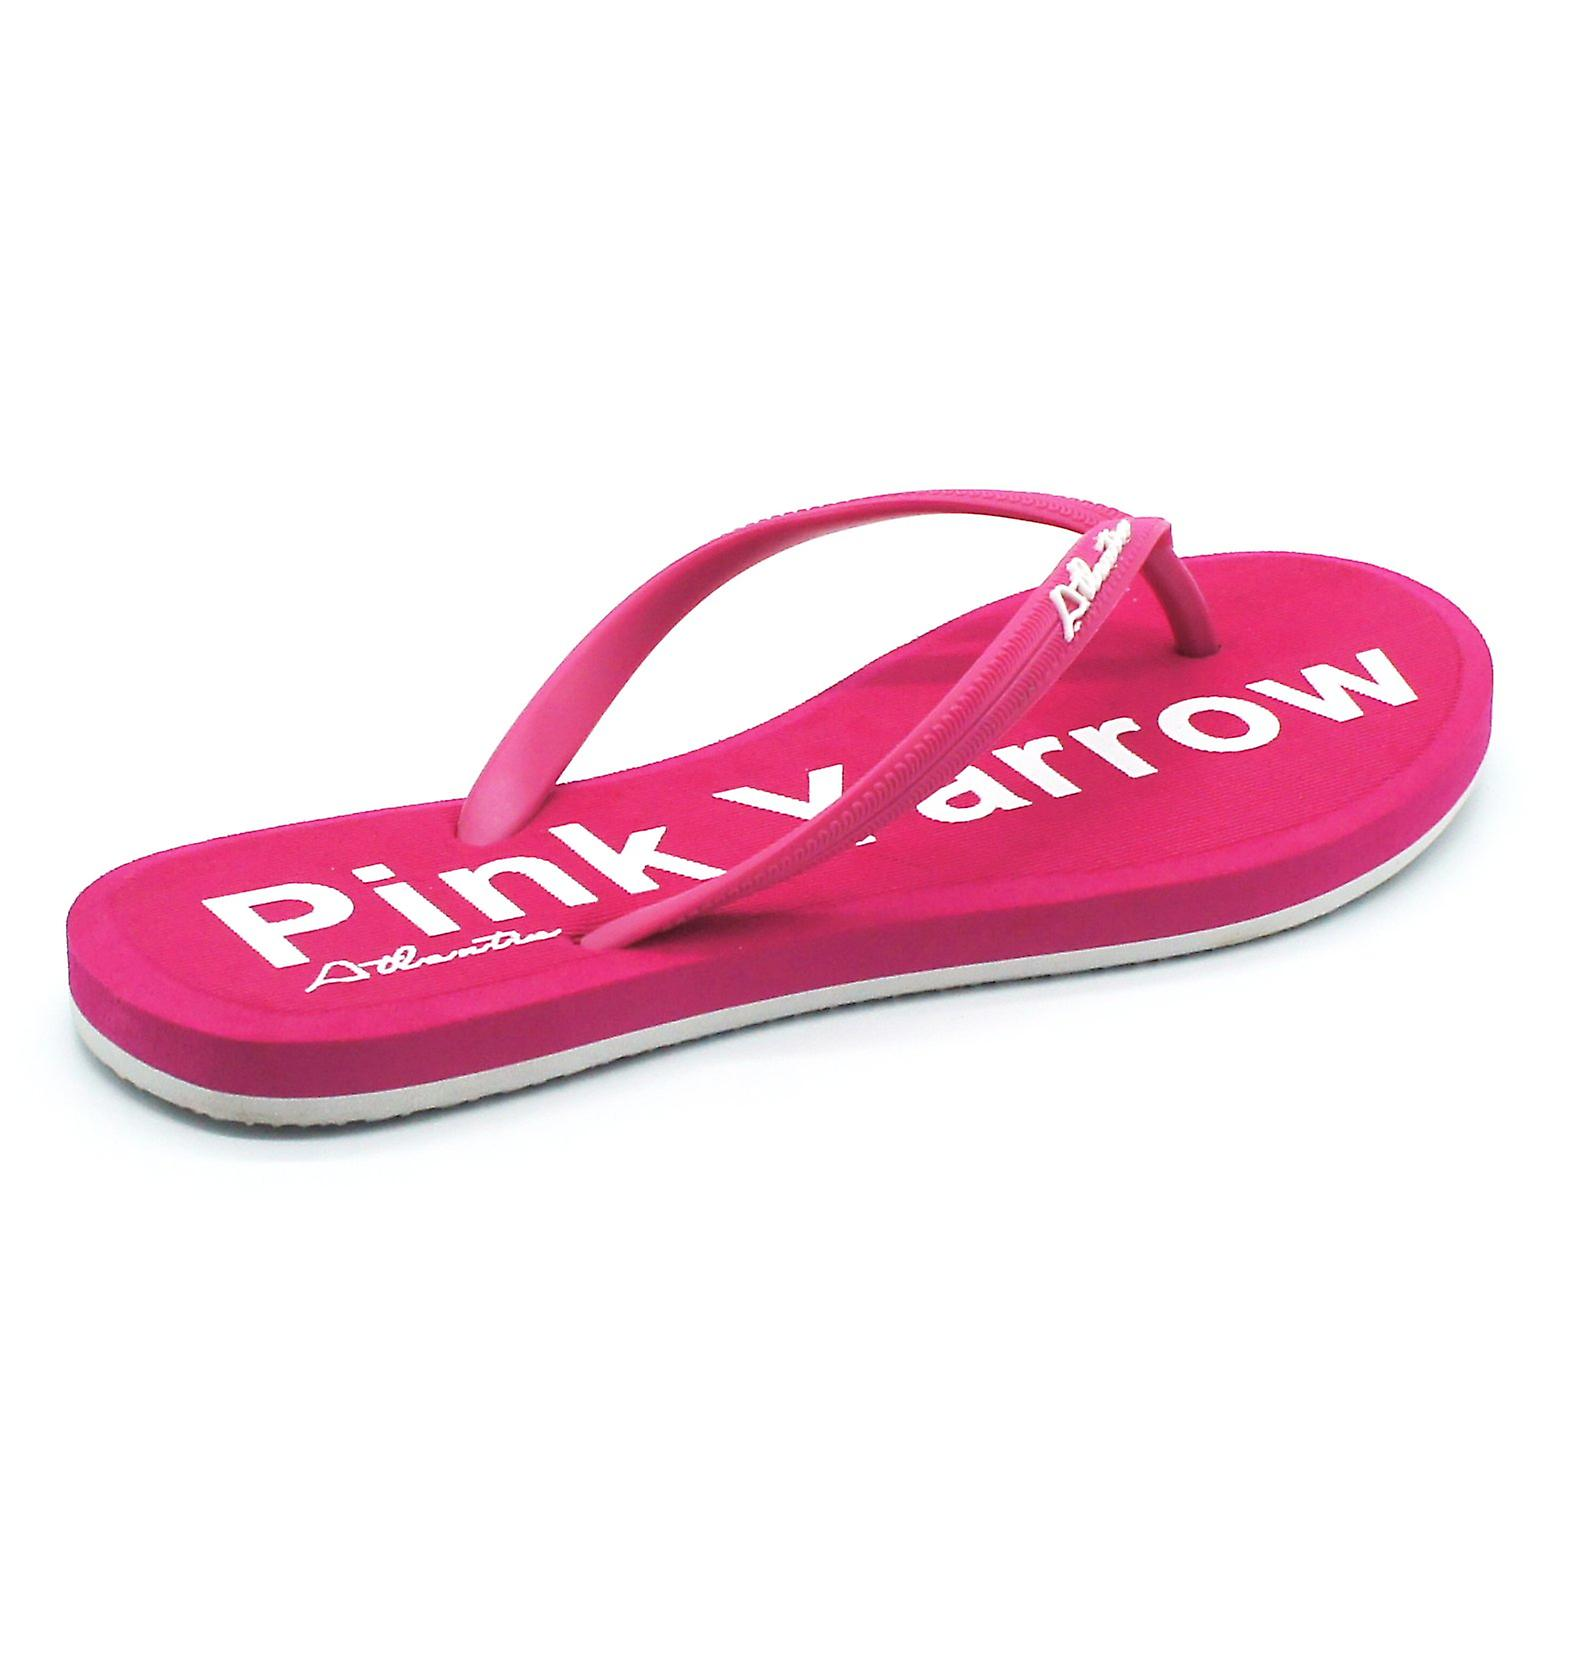 Atlantis Shoes Women Supportive Cushioned Comfortable Sandals Flip Flops Simply Colorful Pink Yarrow